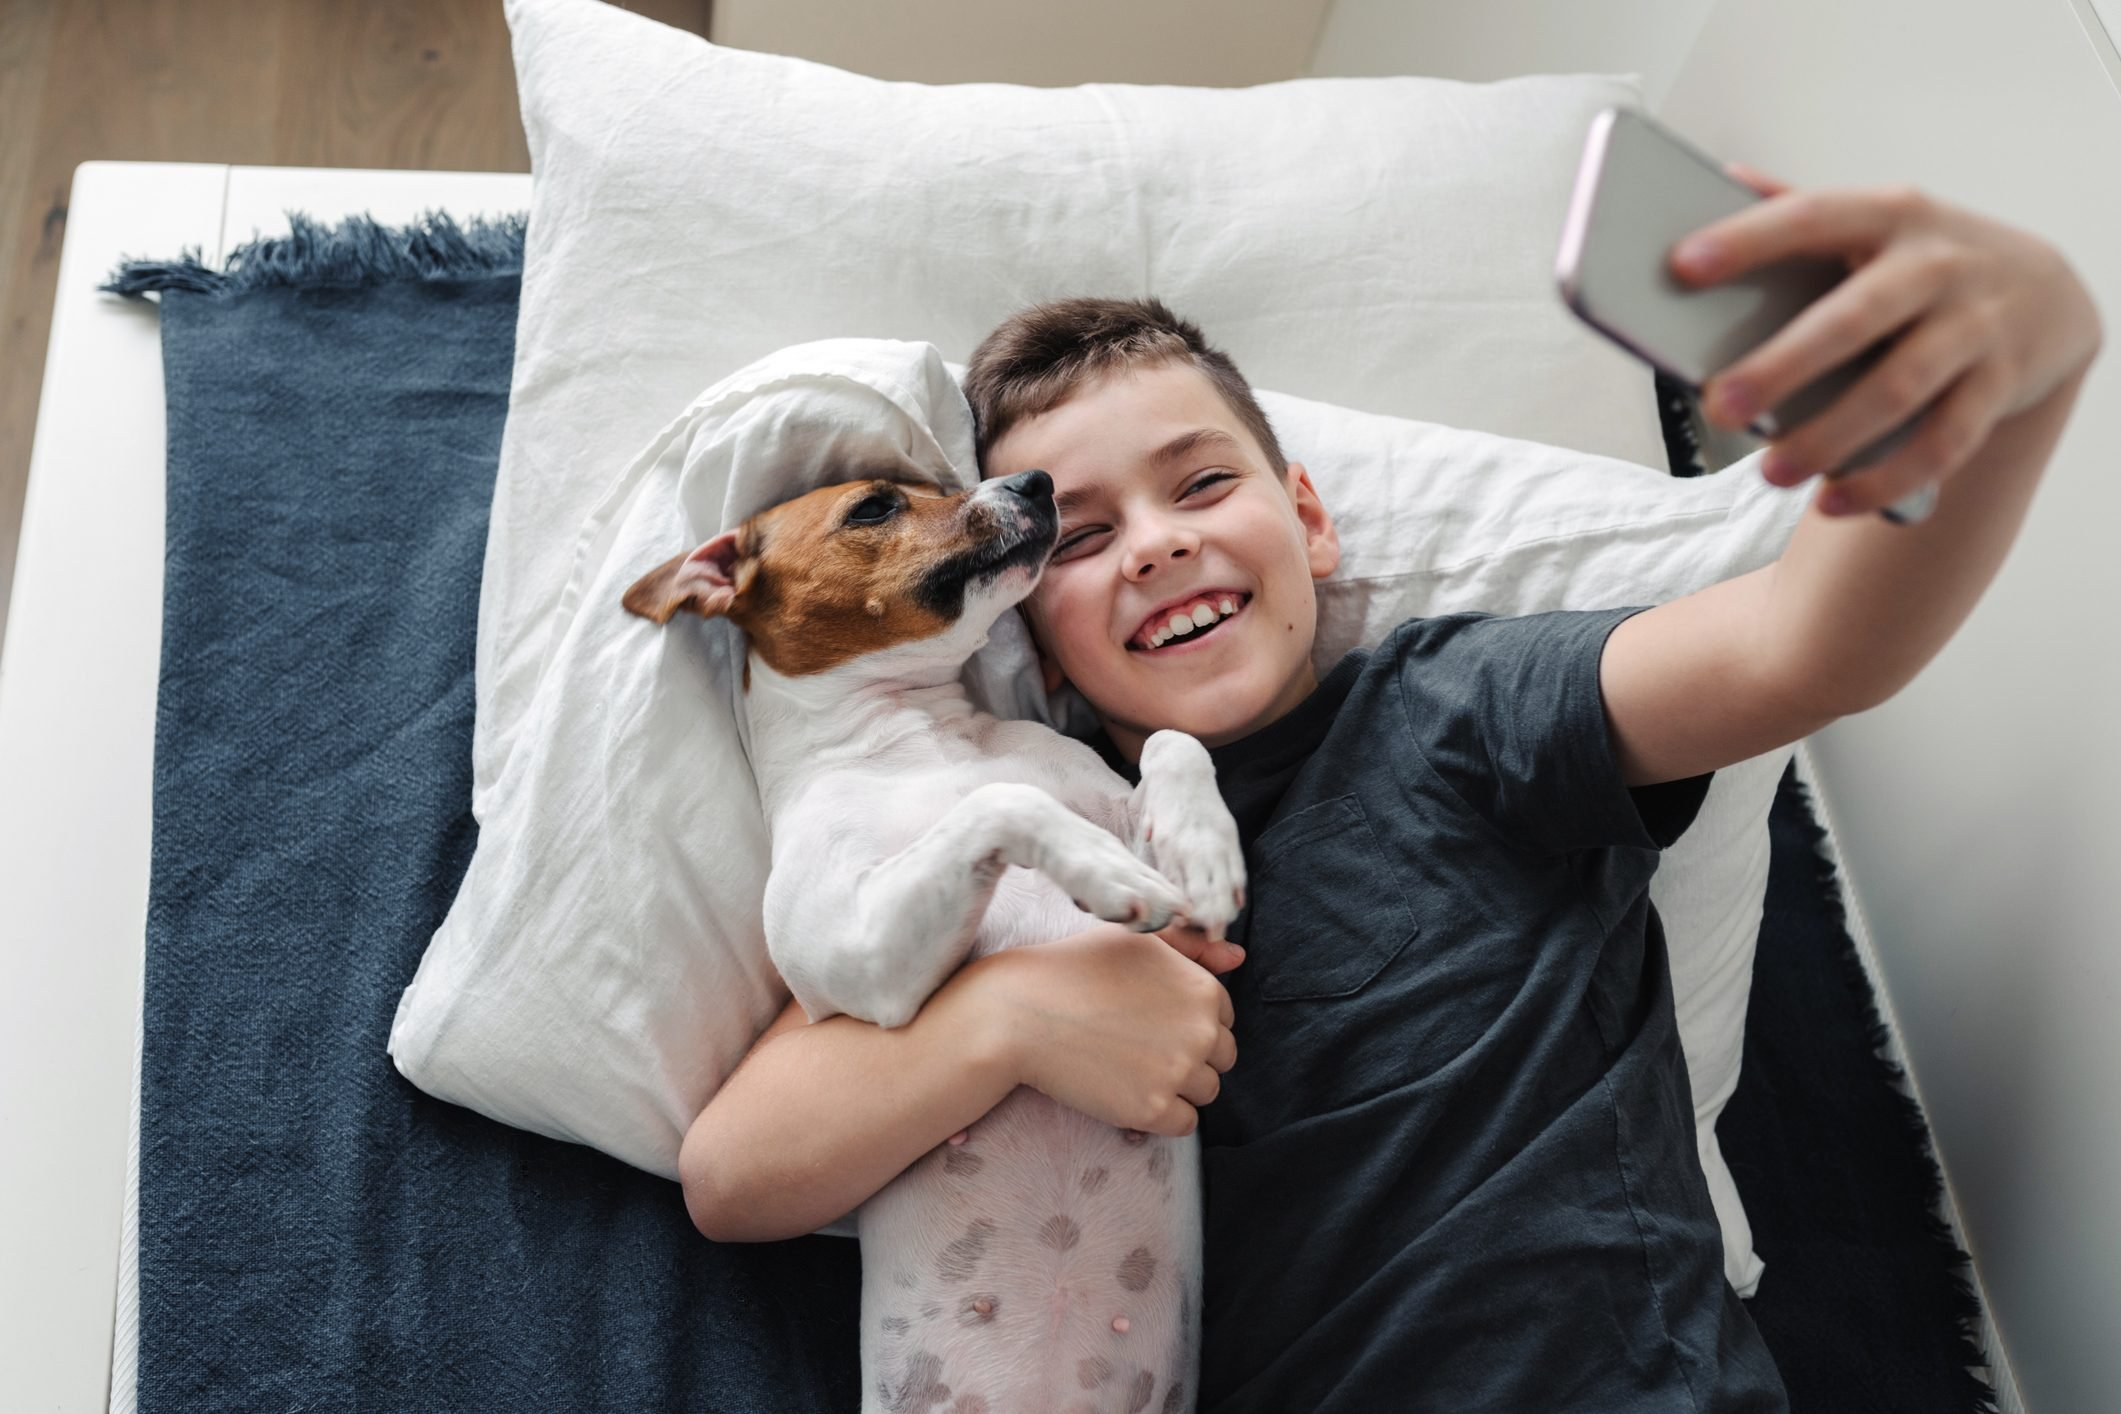 A young boy with a dog in a cozy interior.